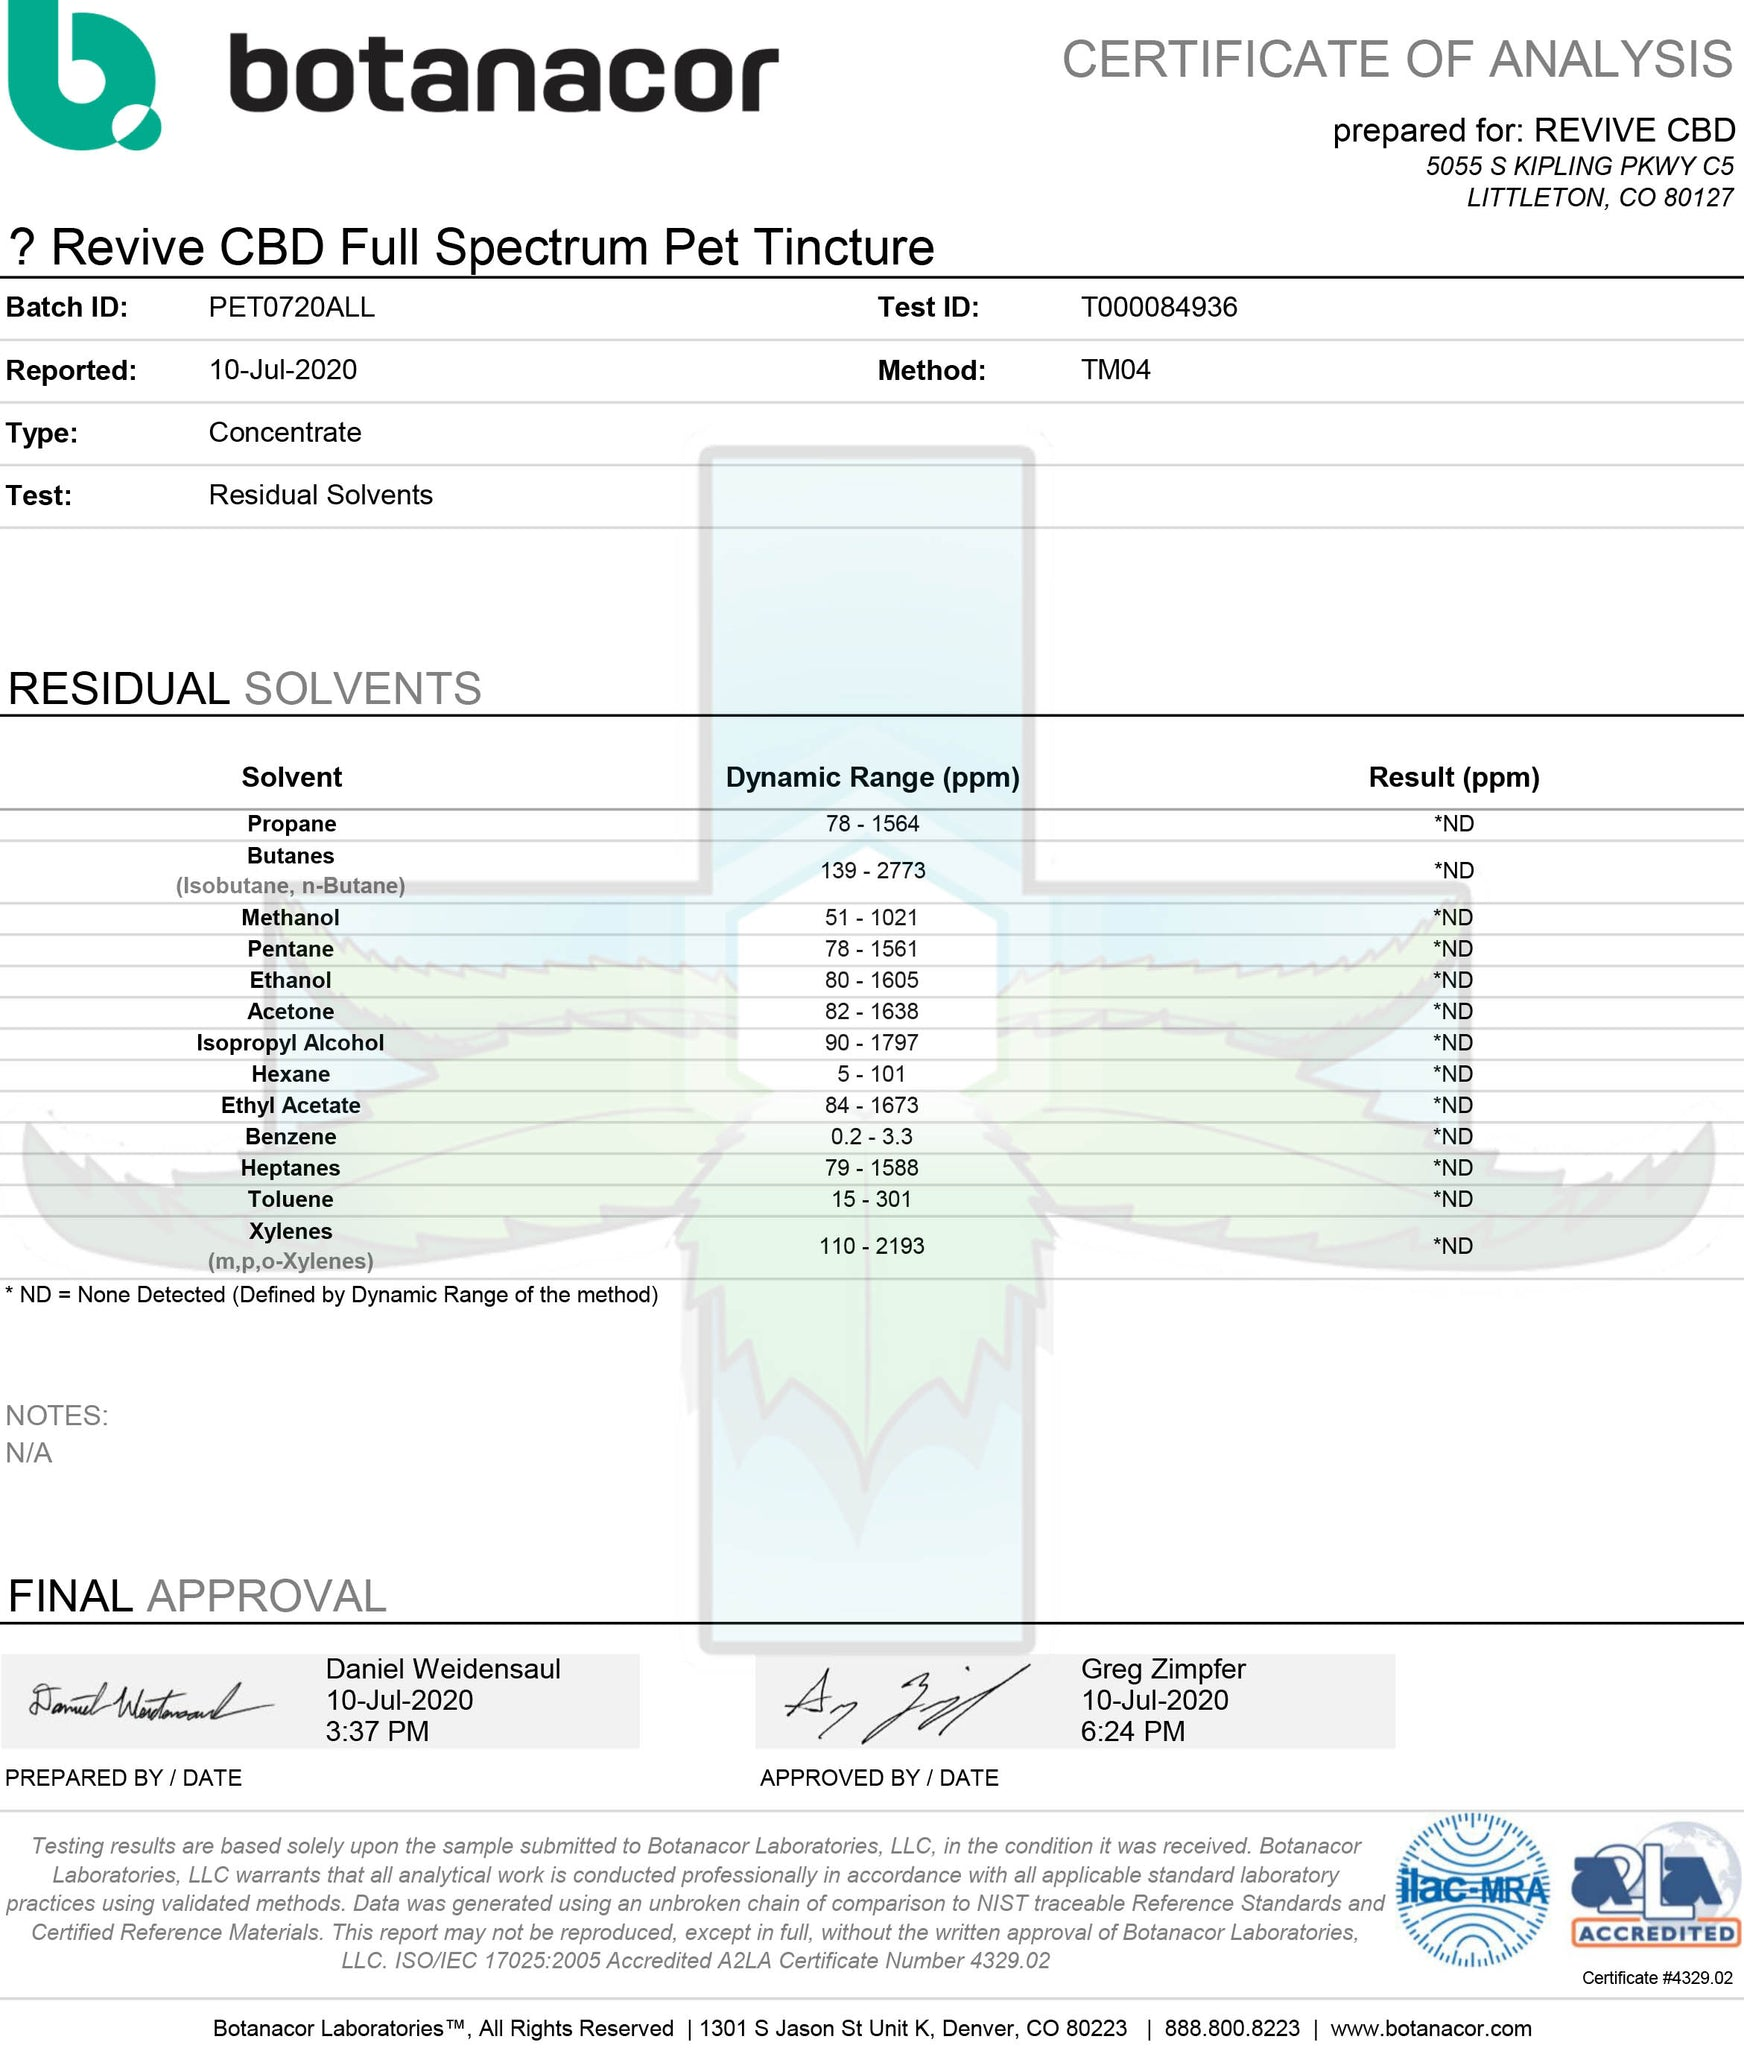 Certificate of Analysis for Revive CBD Pet Tinctures 600mg 60mL Residual Solvents